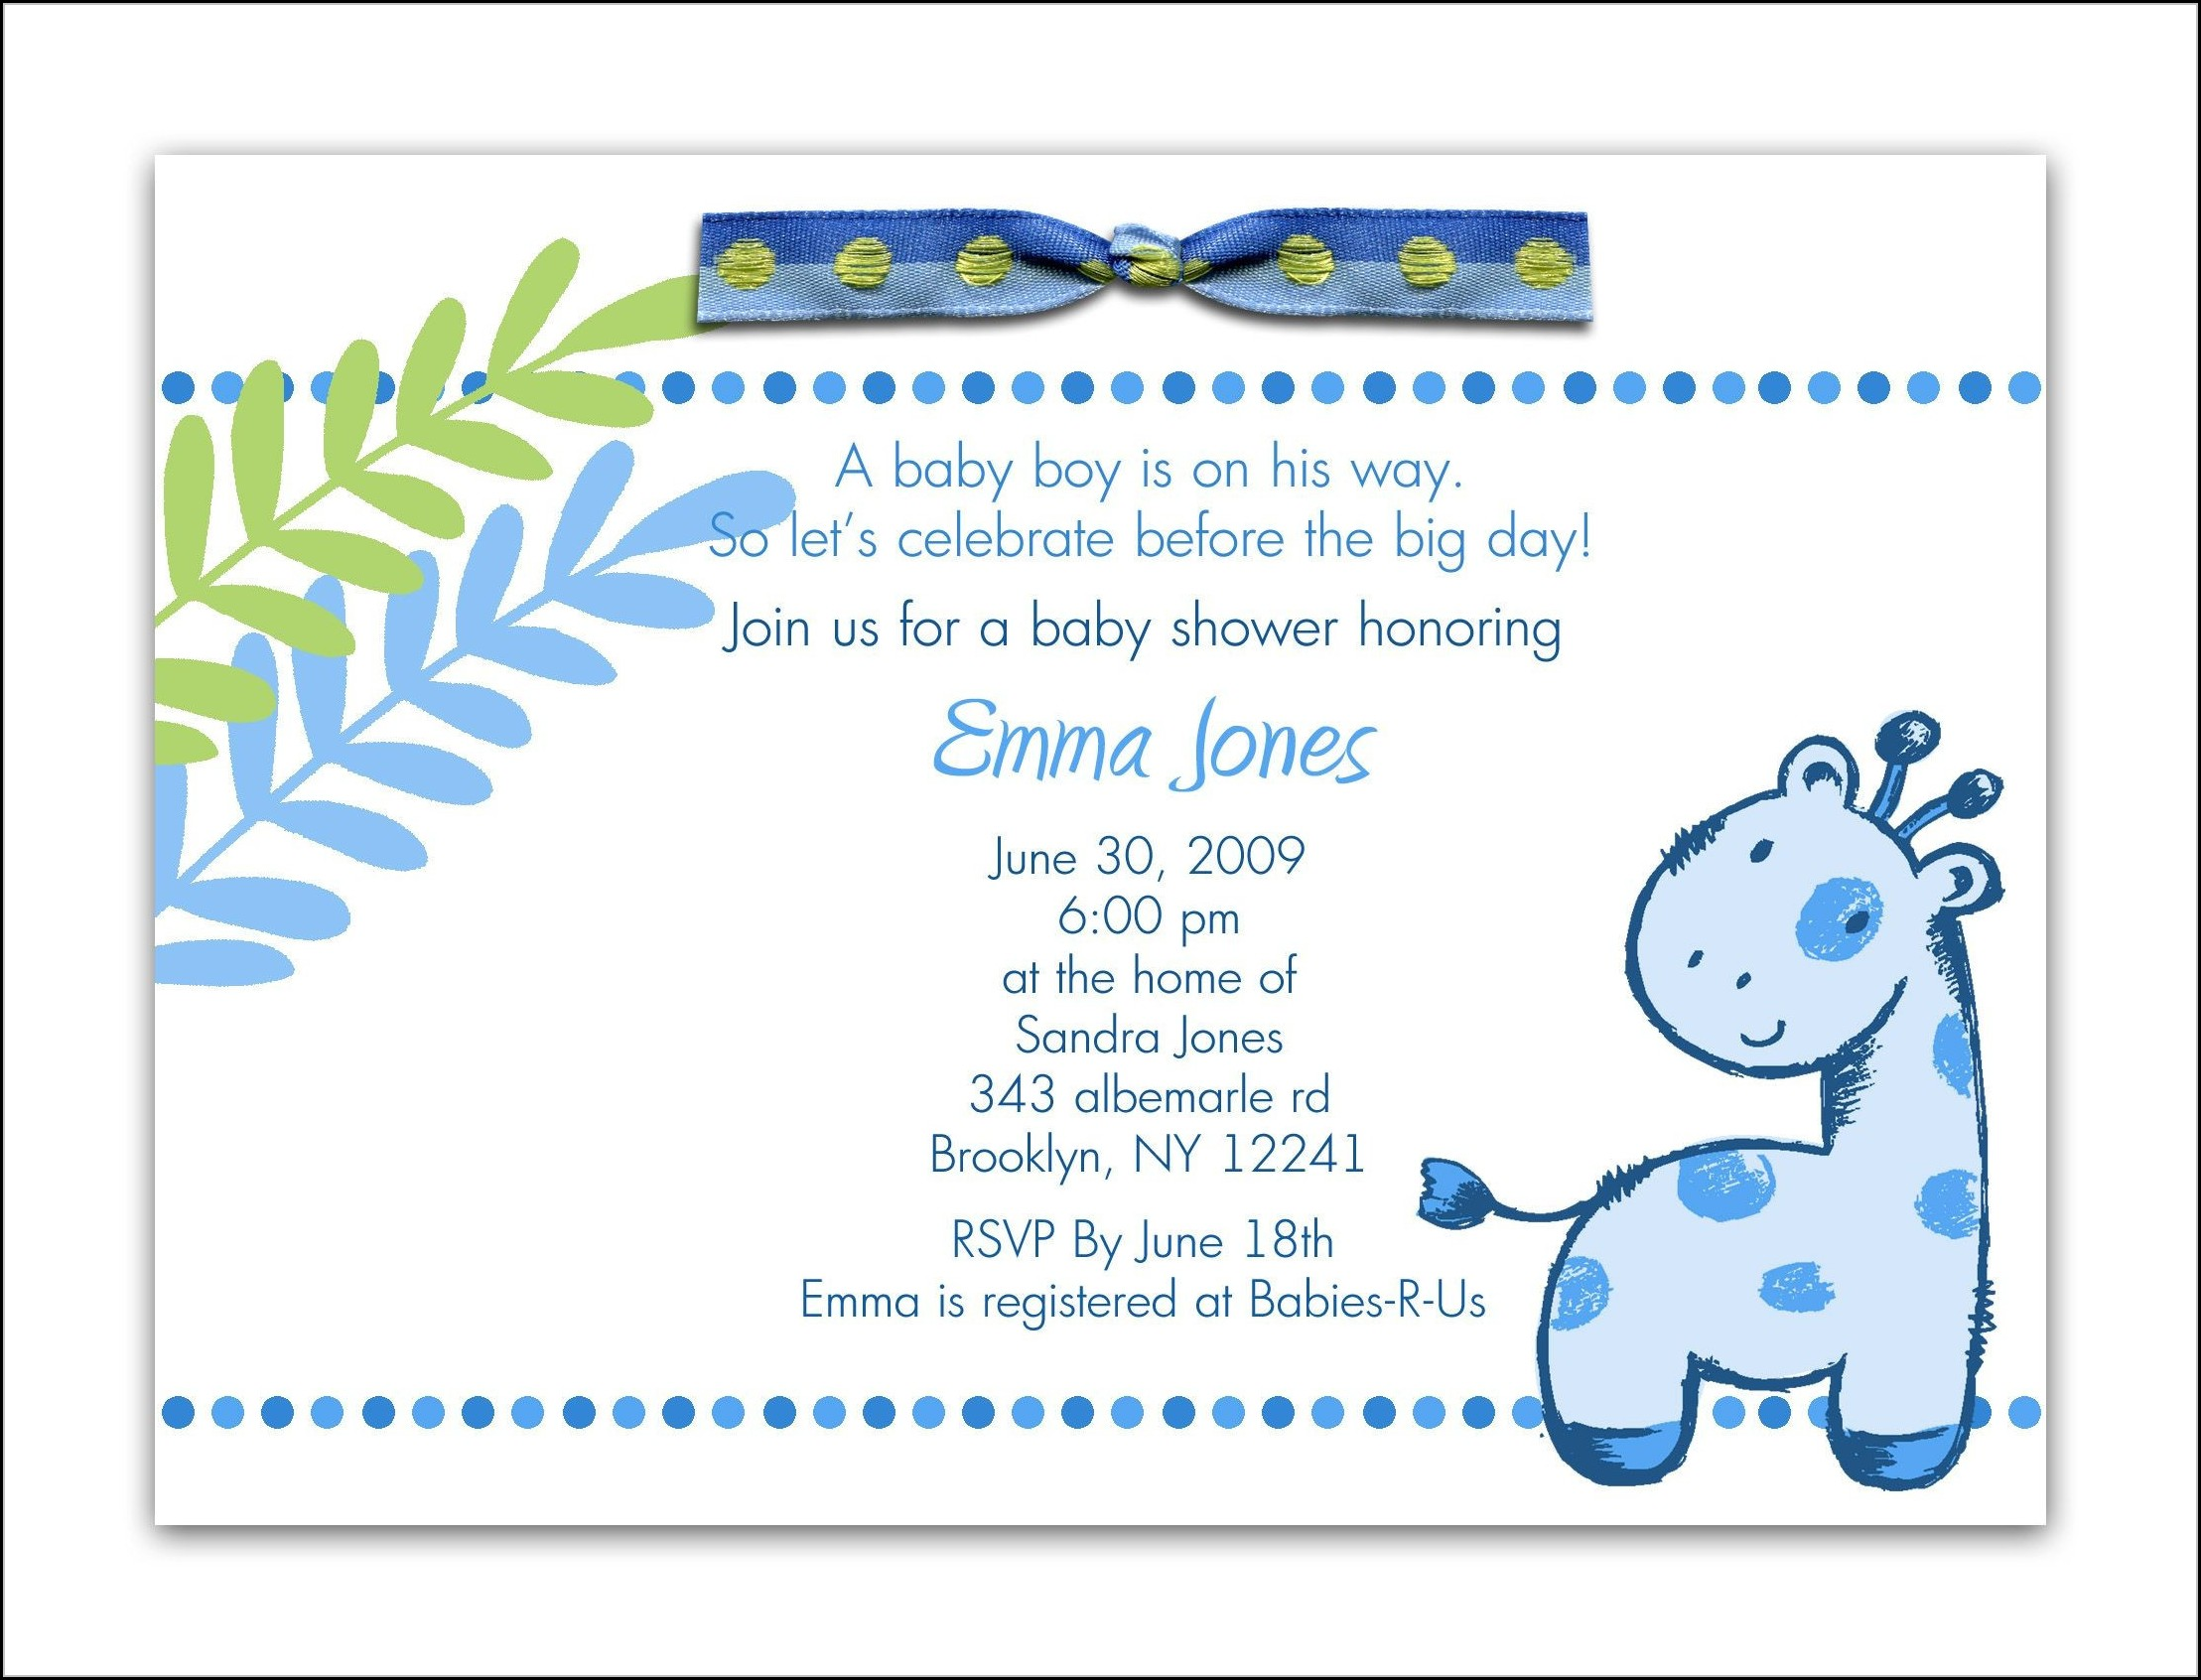 Downloadable Free Printable Baby Shower Invitations Templates For Boys